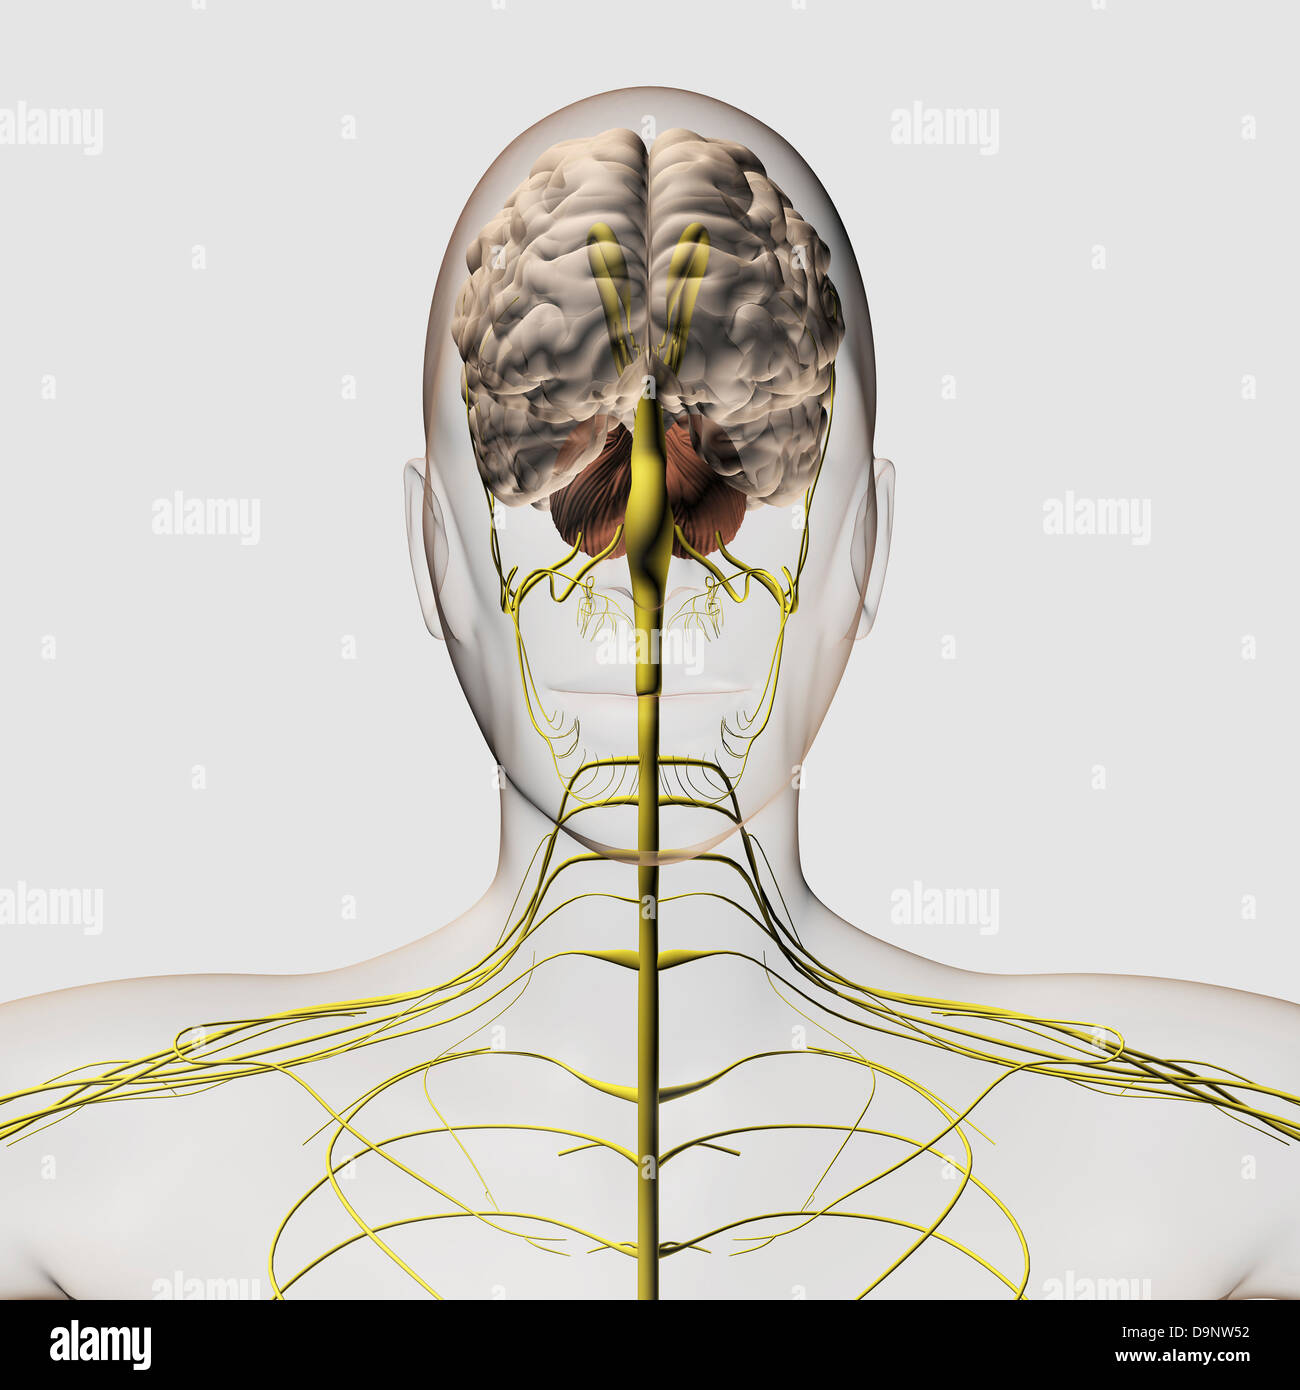 Medical illustration of the human nervous system and brain, front view. - Stock Image